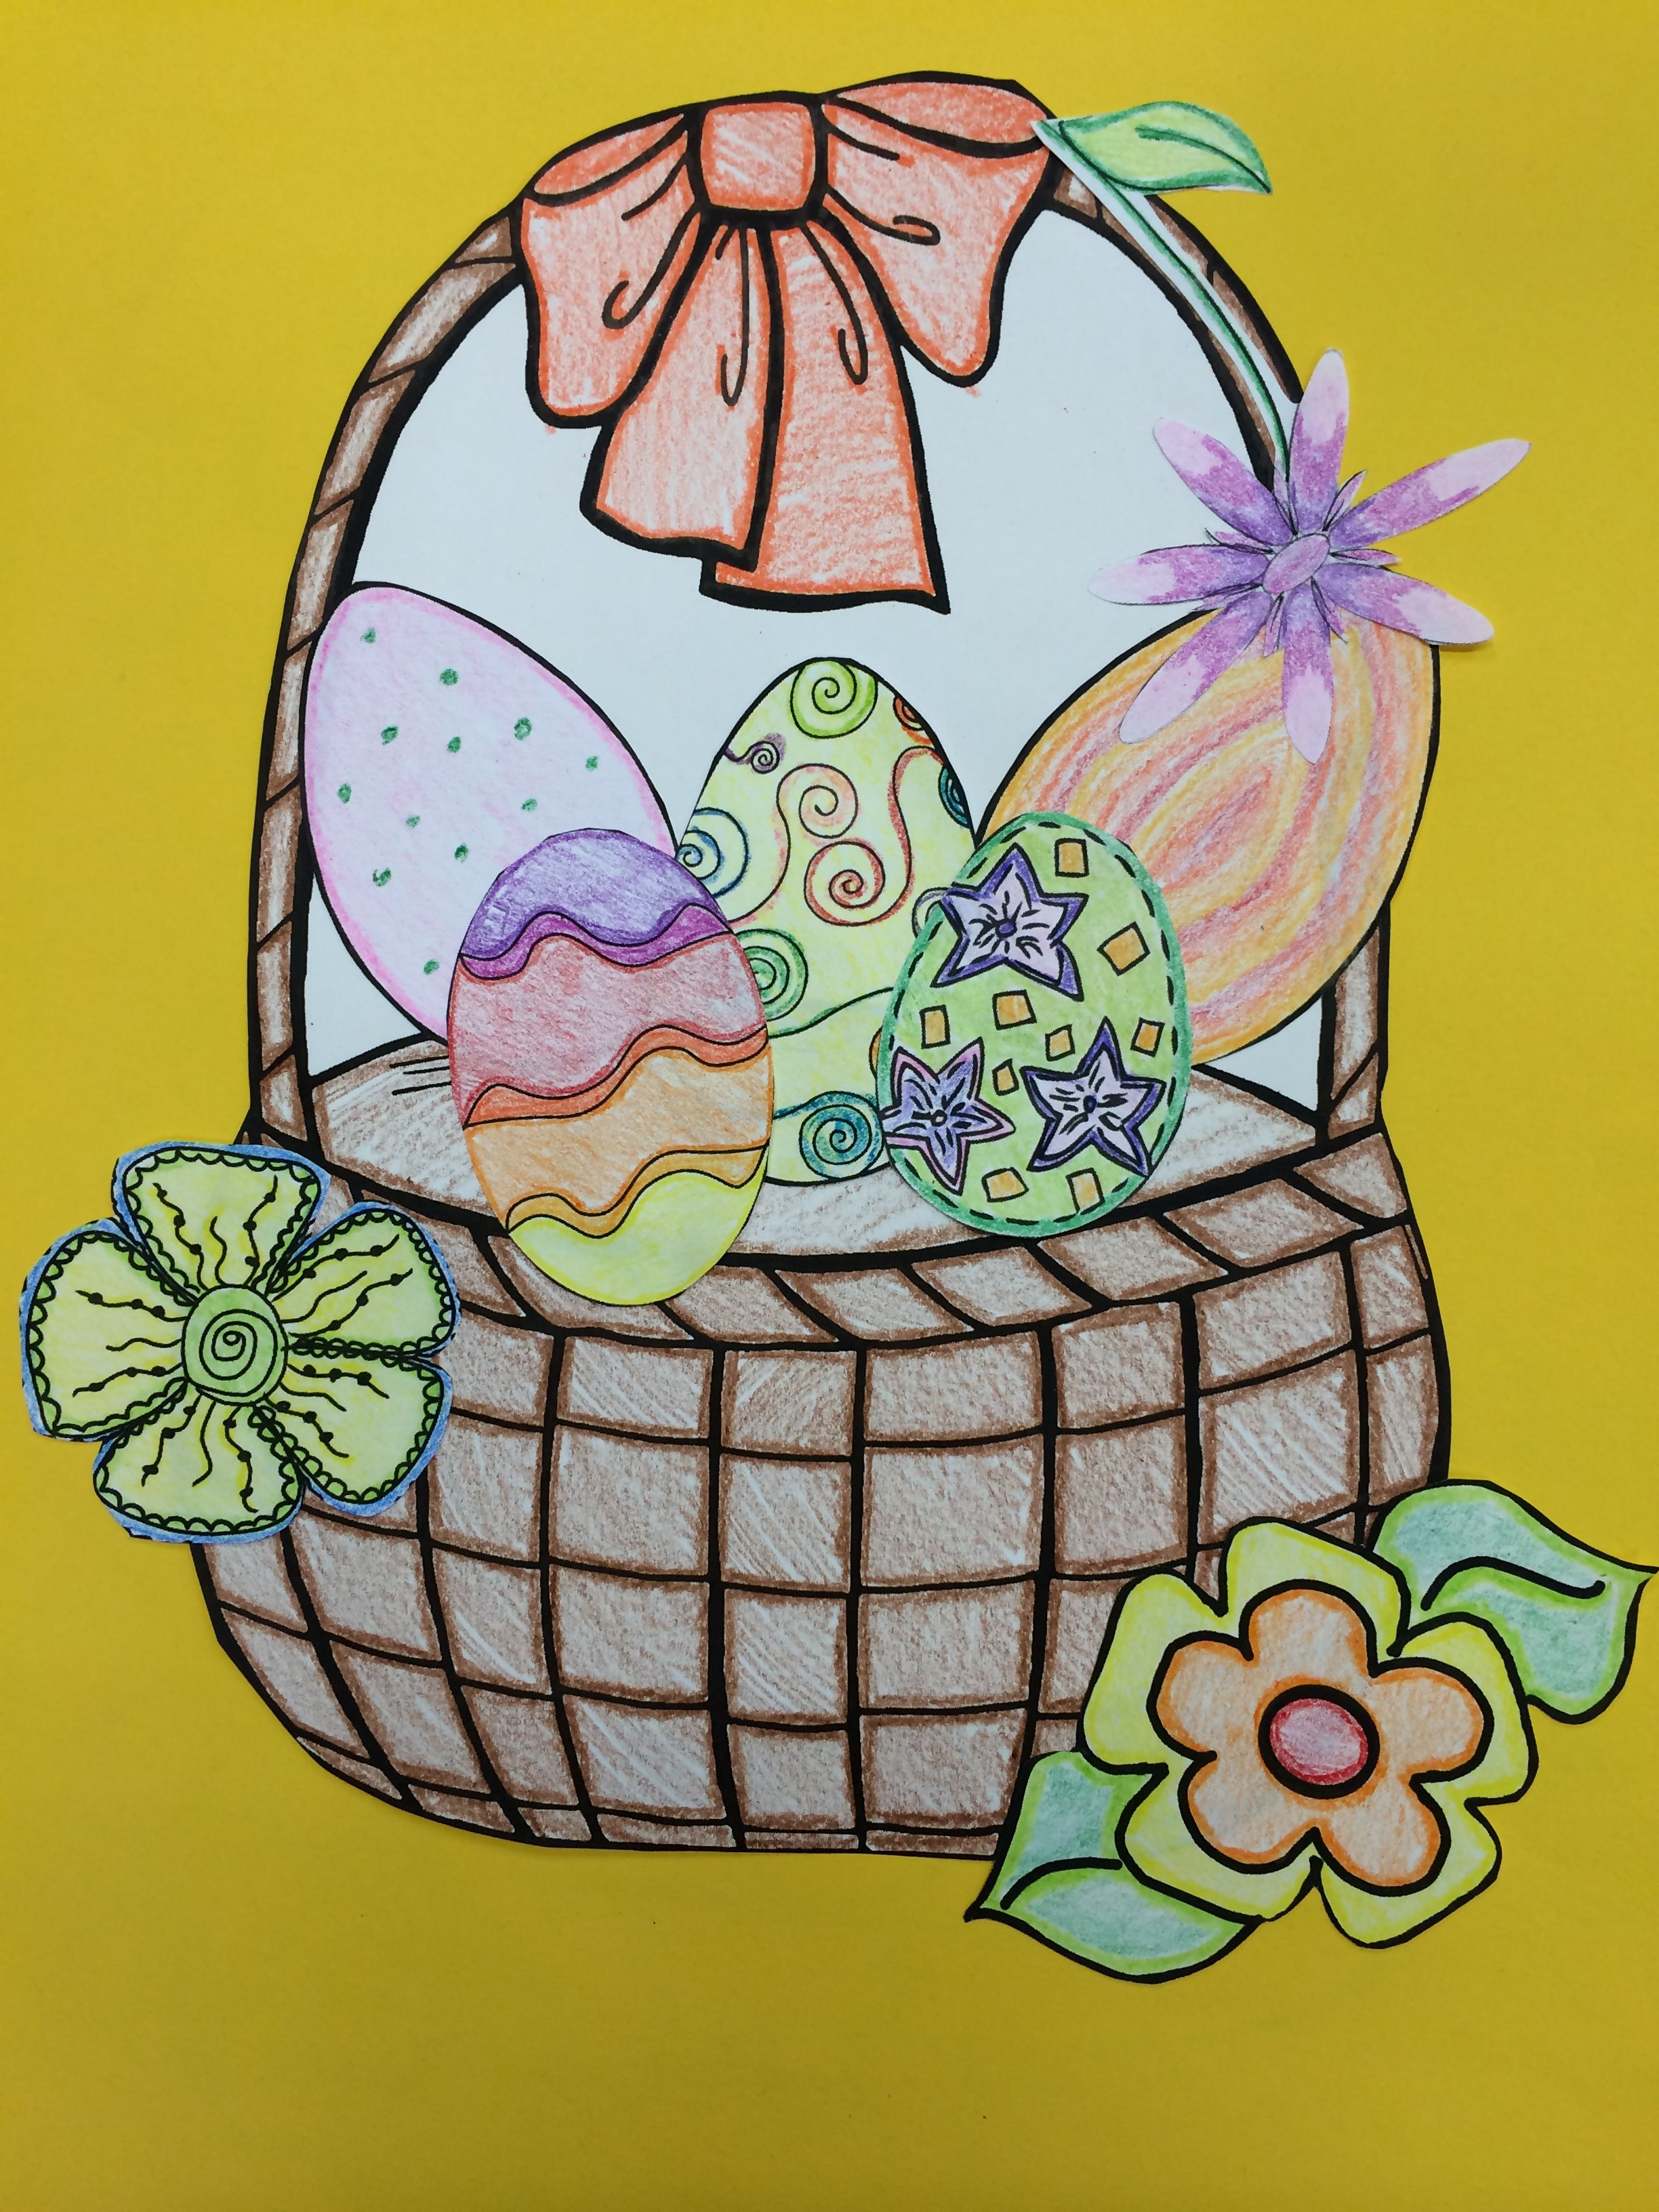 This Is One Of The Two Baskets And Eggs From The Adjective